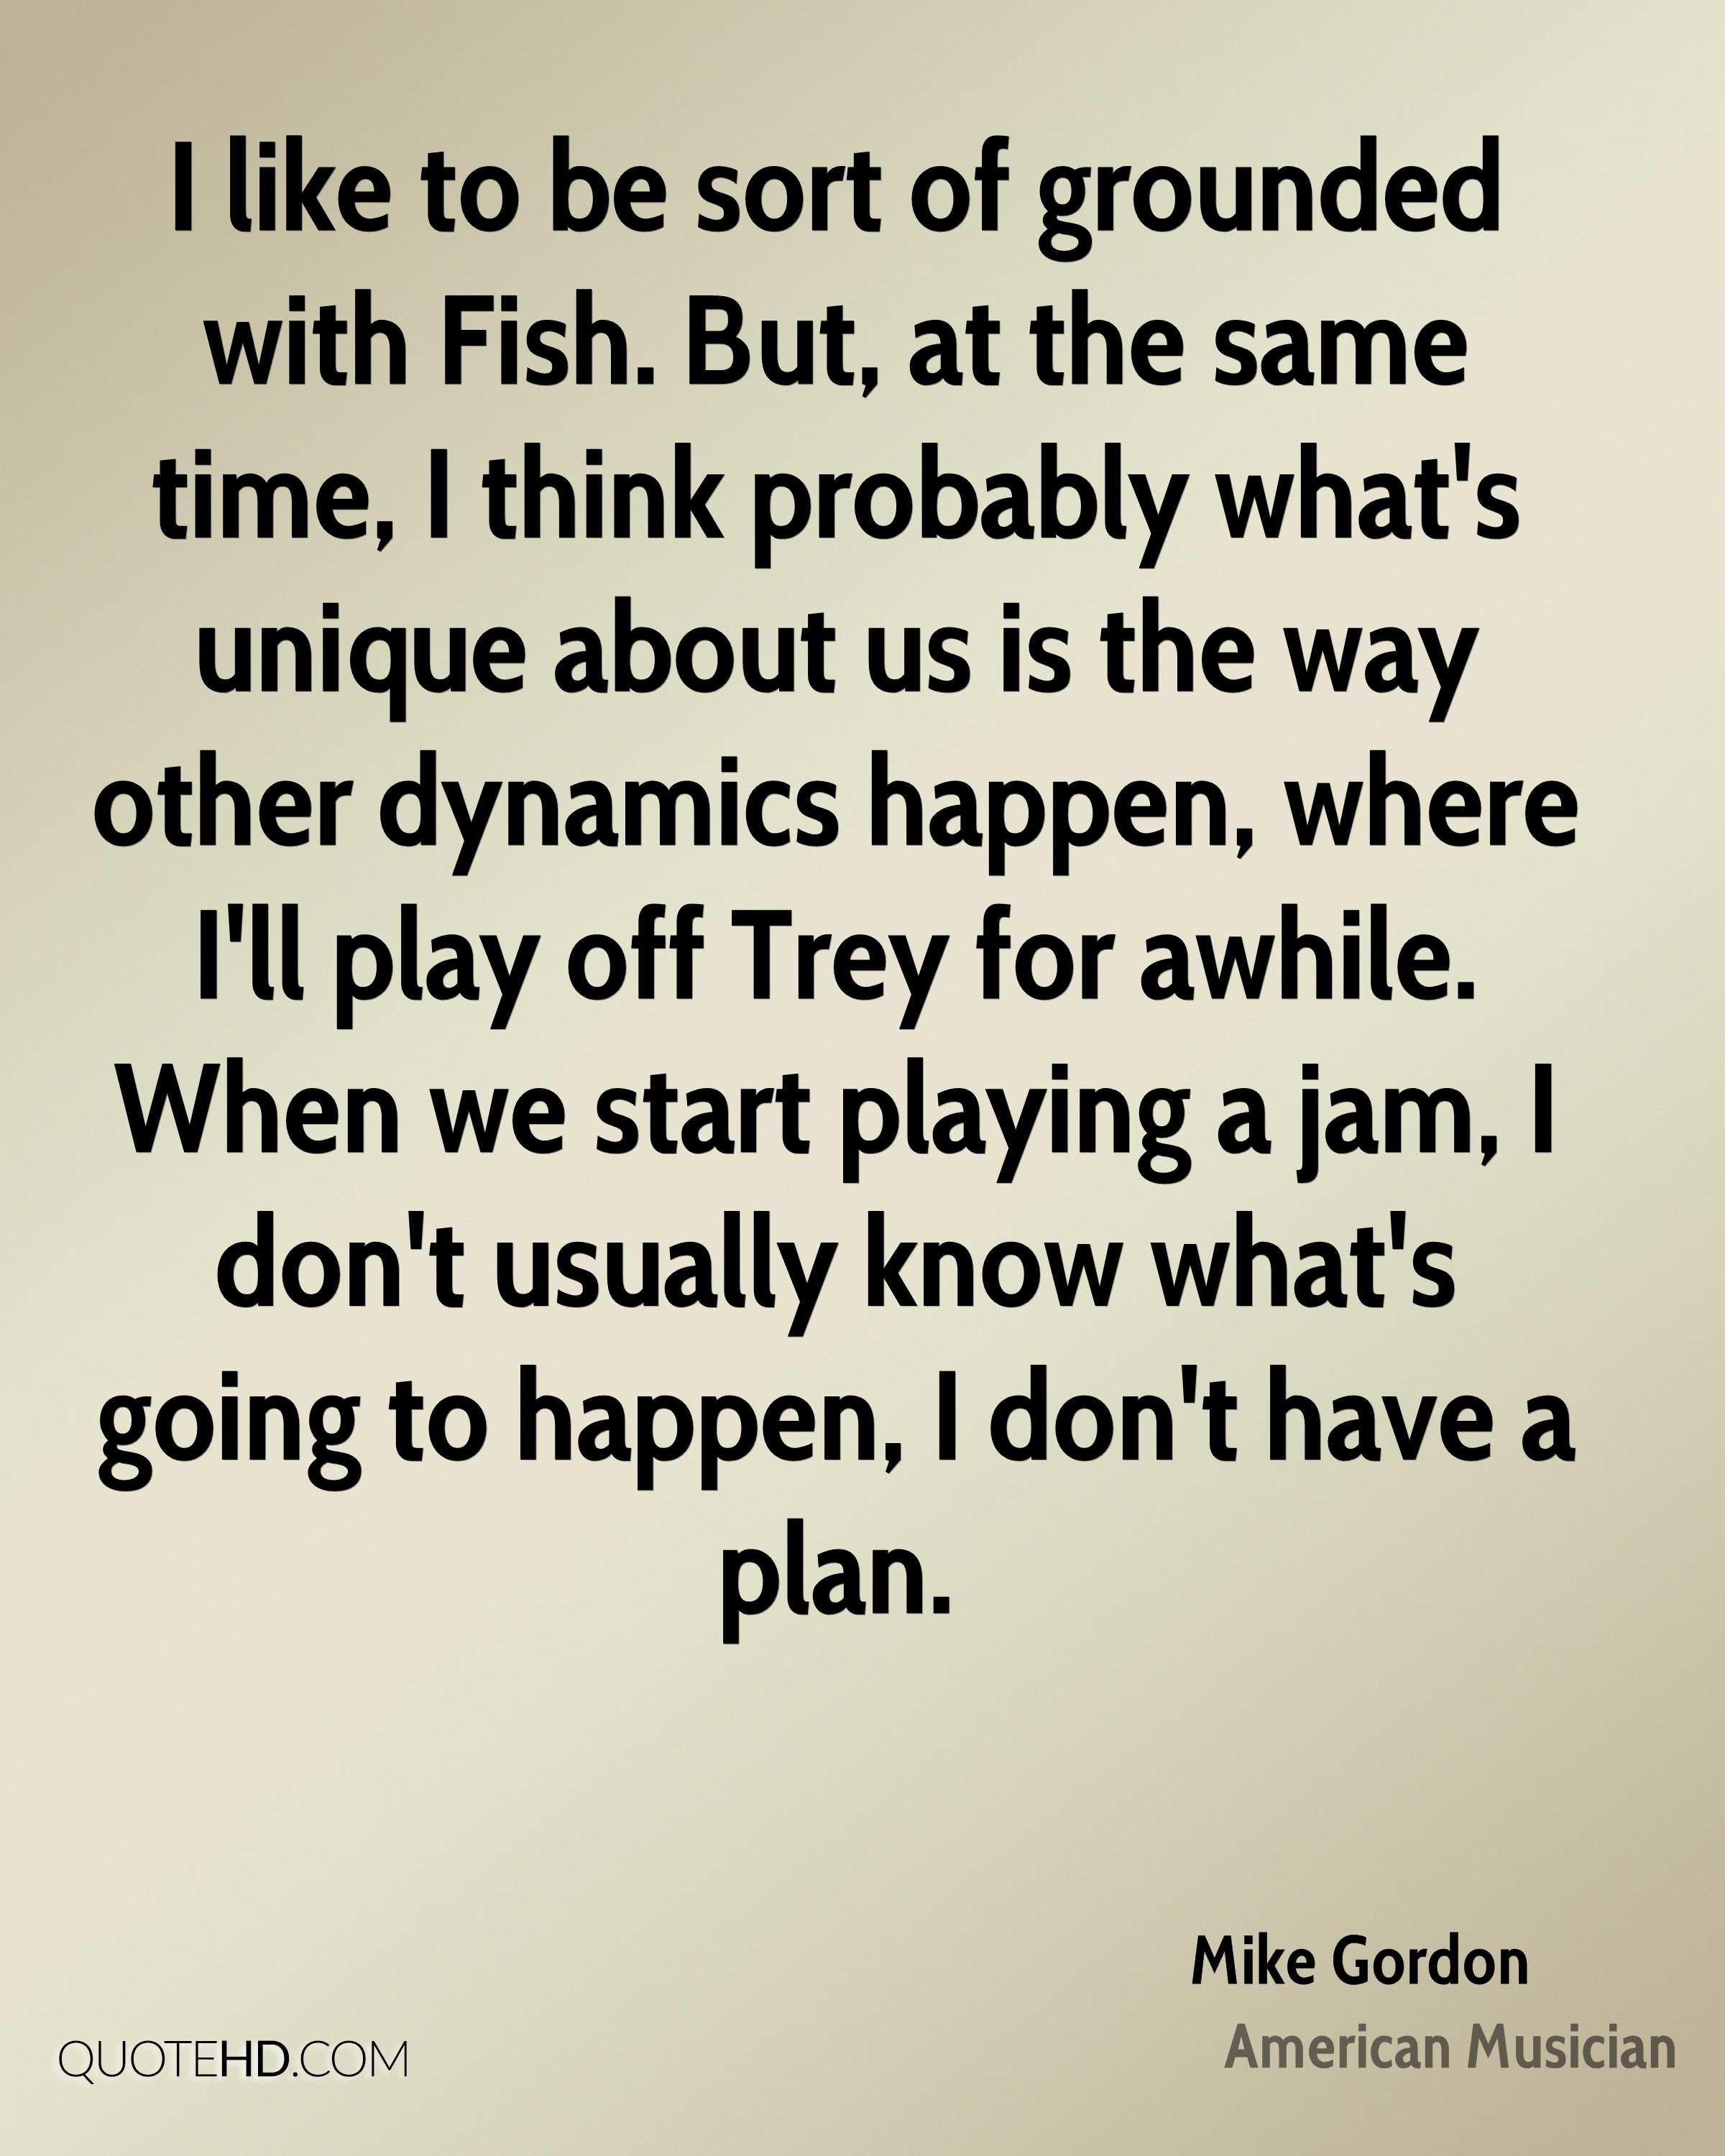 I like to be sort of grounded with Fish. But, at the same time, I think probably what's unique about us is the way other dynamics happen, where I'll play off Trey for awhile. When we start playing a jam, I don't usually know what's going to happen, I don't have a plan.